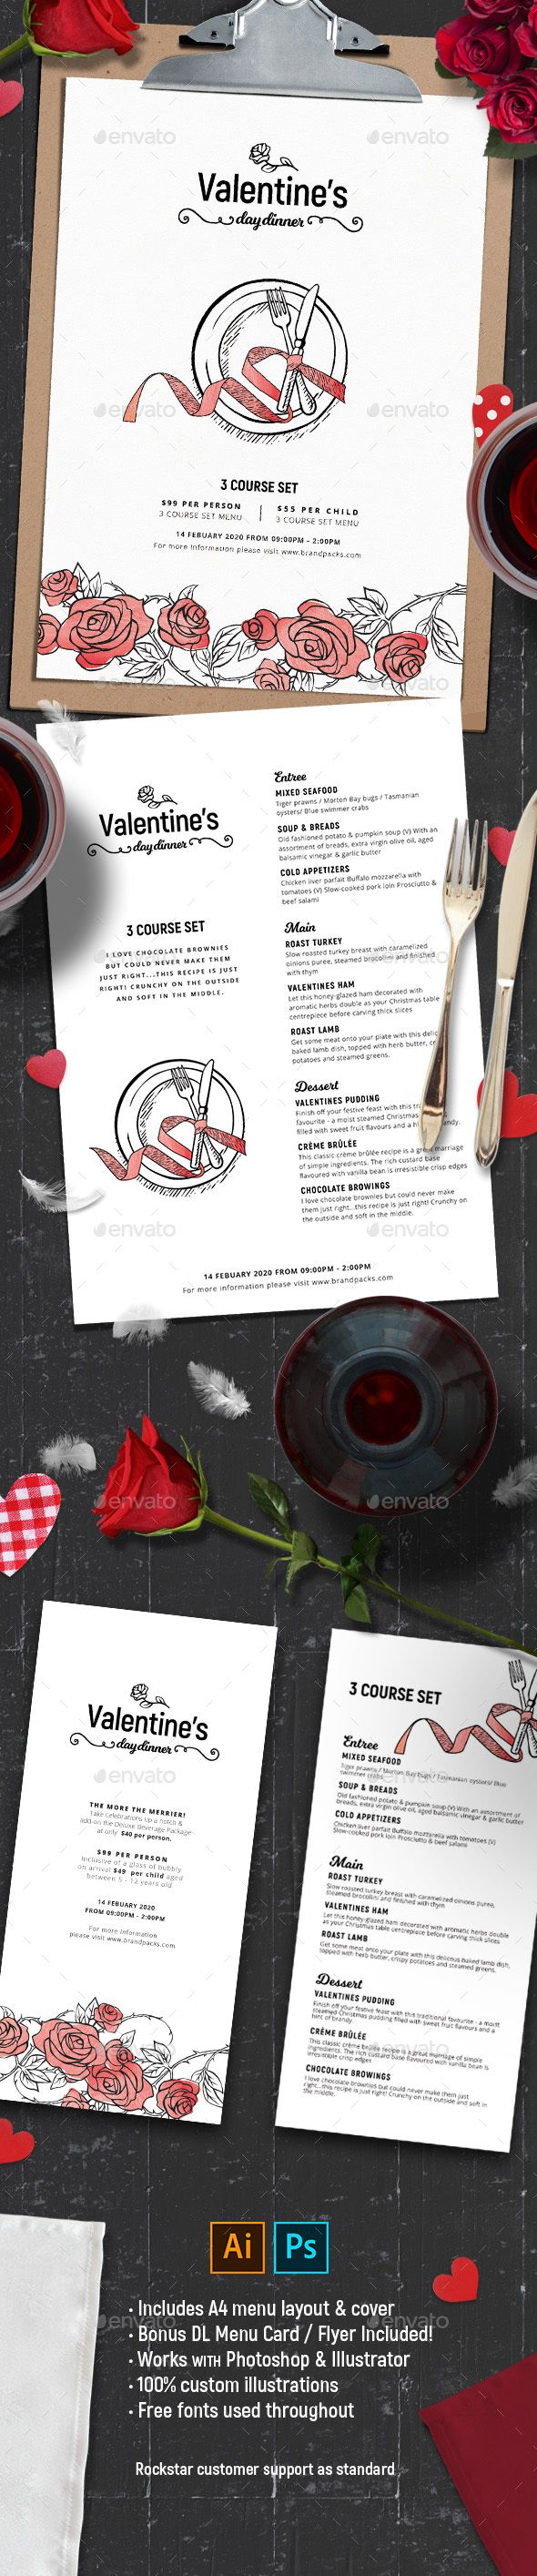 Valentines Menu Templates for Photoshop & IllustratorCreate beautiful Valentine¡¯s Day menu designs & layouts with our readymade Valentines Menu Templates for Photoshop & Illustrator. Included in this pack you¡¯ll find:a Valentines themed A4 menu cover design a complete A4 Valentines Menu Template for Valentine¡¯s Day lunches, dinners & set menus a